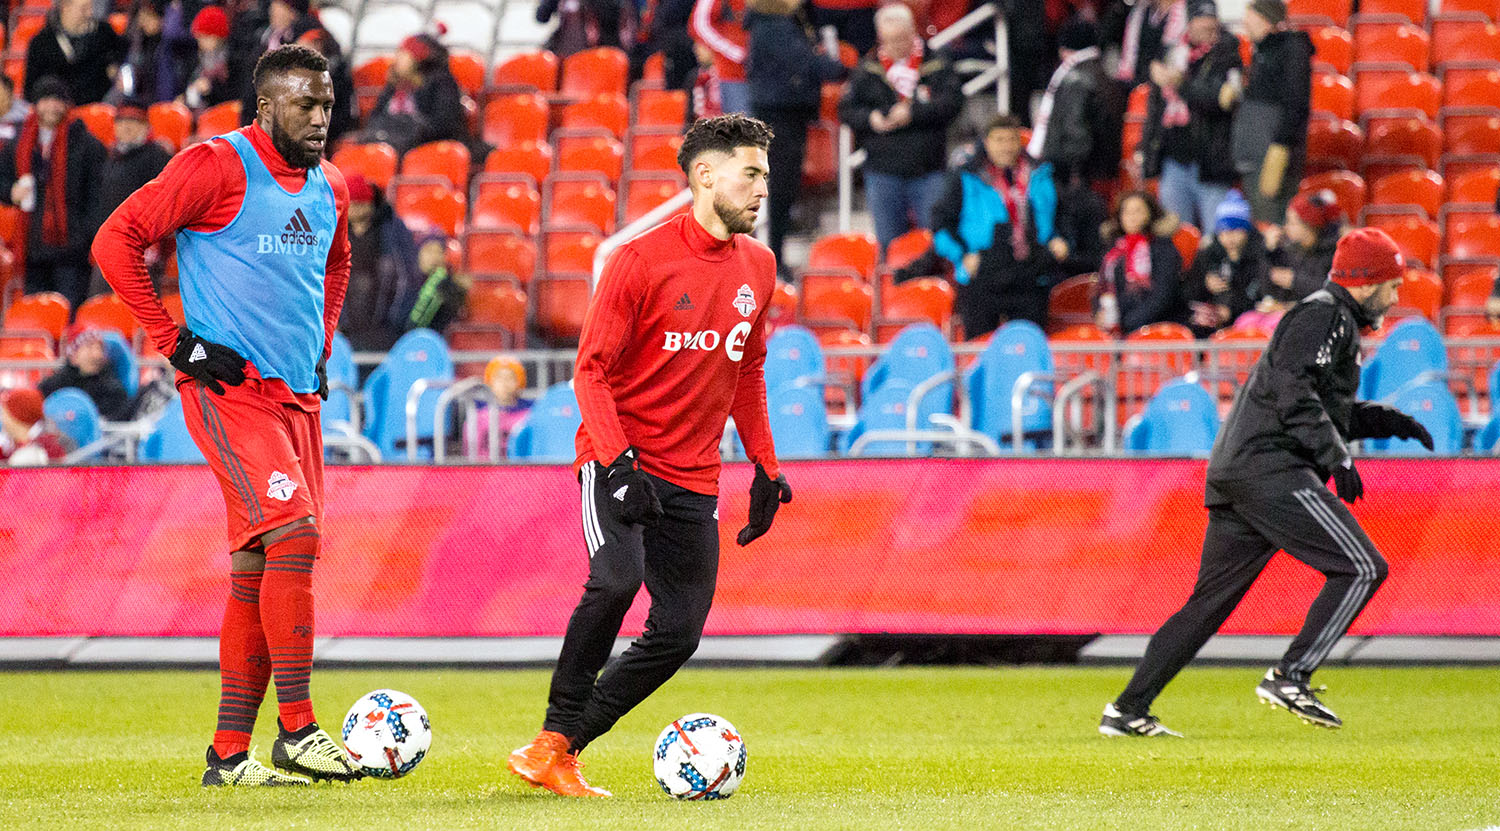 Jozy Altidore and Jonathan Osorio taking practice shots before a MLS playoff match in 2017 at BMO Field.Image by Dennis Marciniak of denMAR Media.